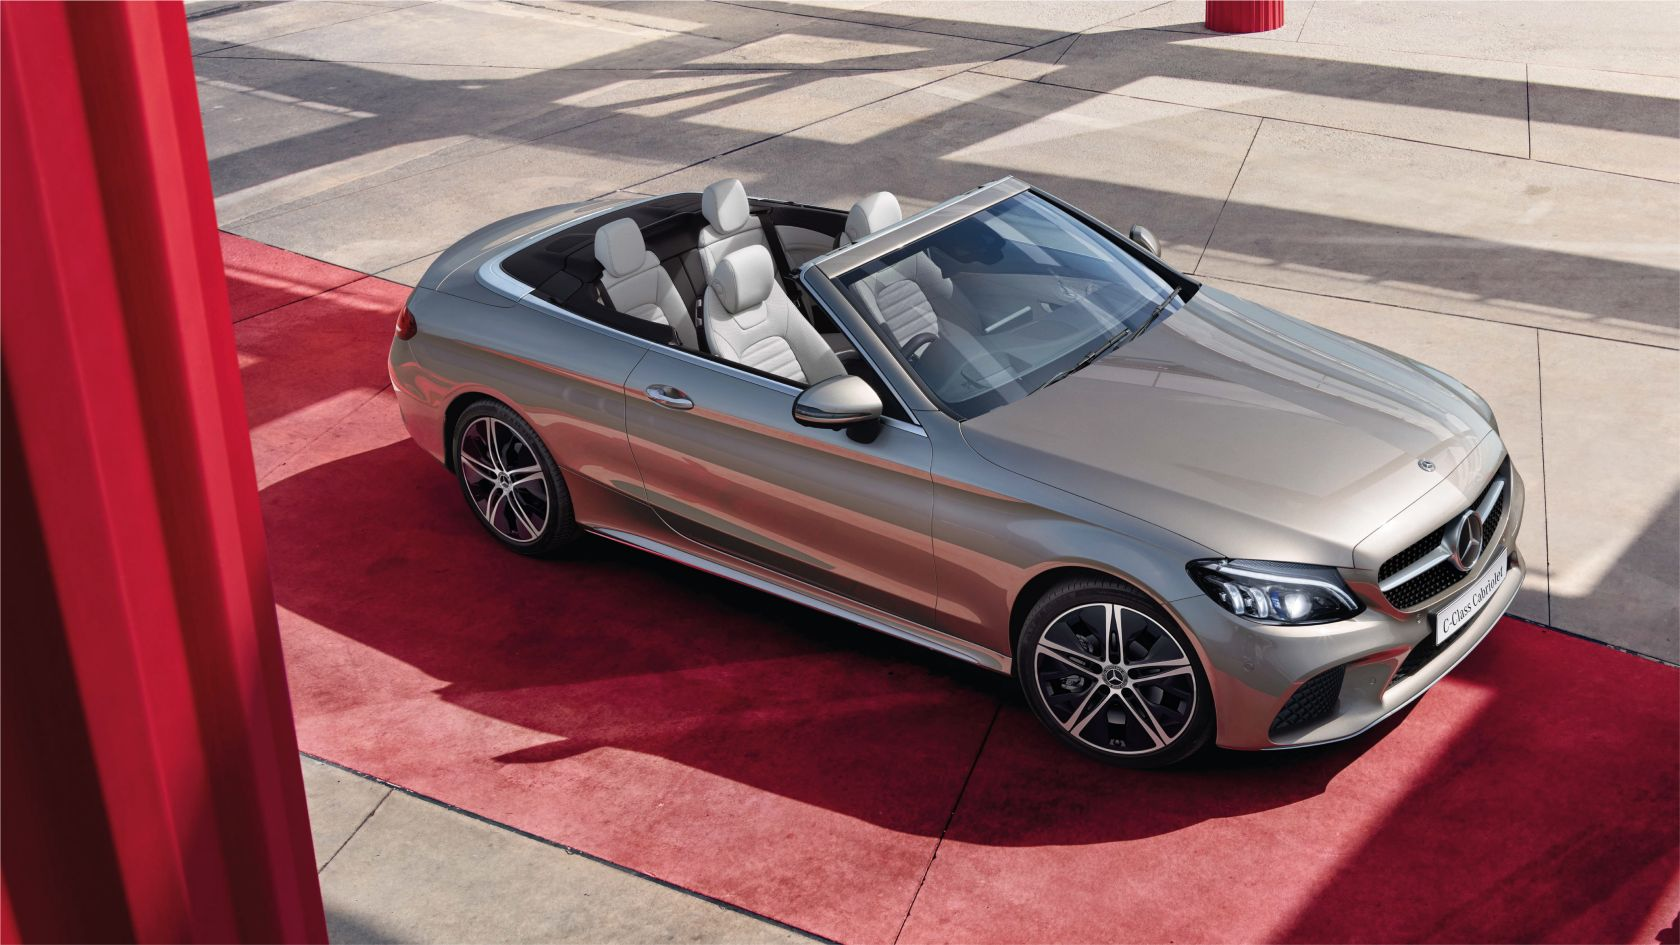 Mercedes Benz C Class Cabriolet Experience The Vehicle